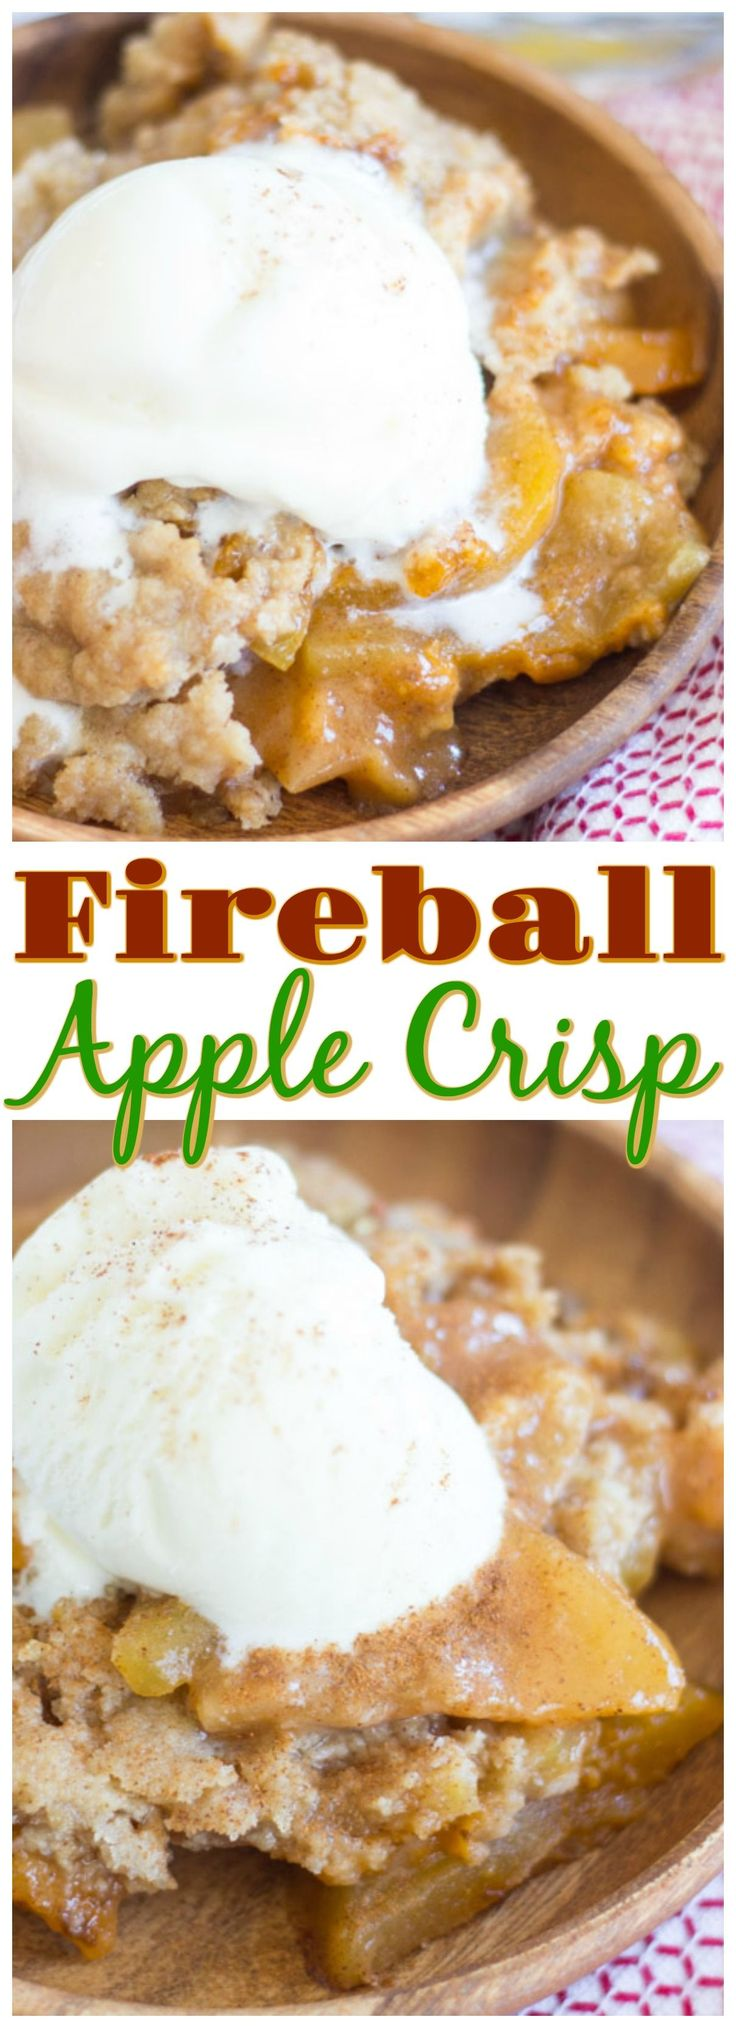 107 best fireball images on pinterest fireball recipes desert classic apple crisp spiked with fireball whiskey for a boozy kick this fireball apple crisp is loaded with sweet cinnamon y apples topped with buttery forumfinder Image collections